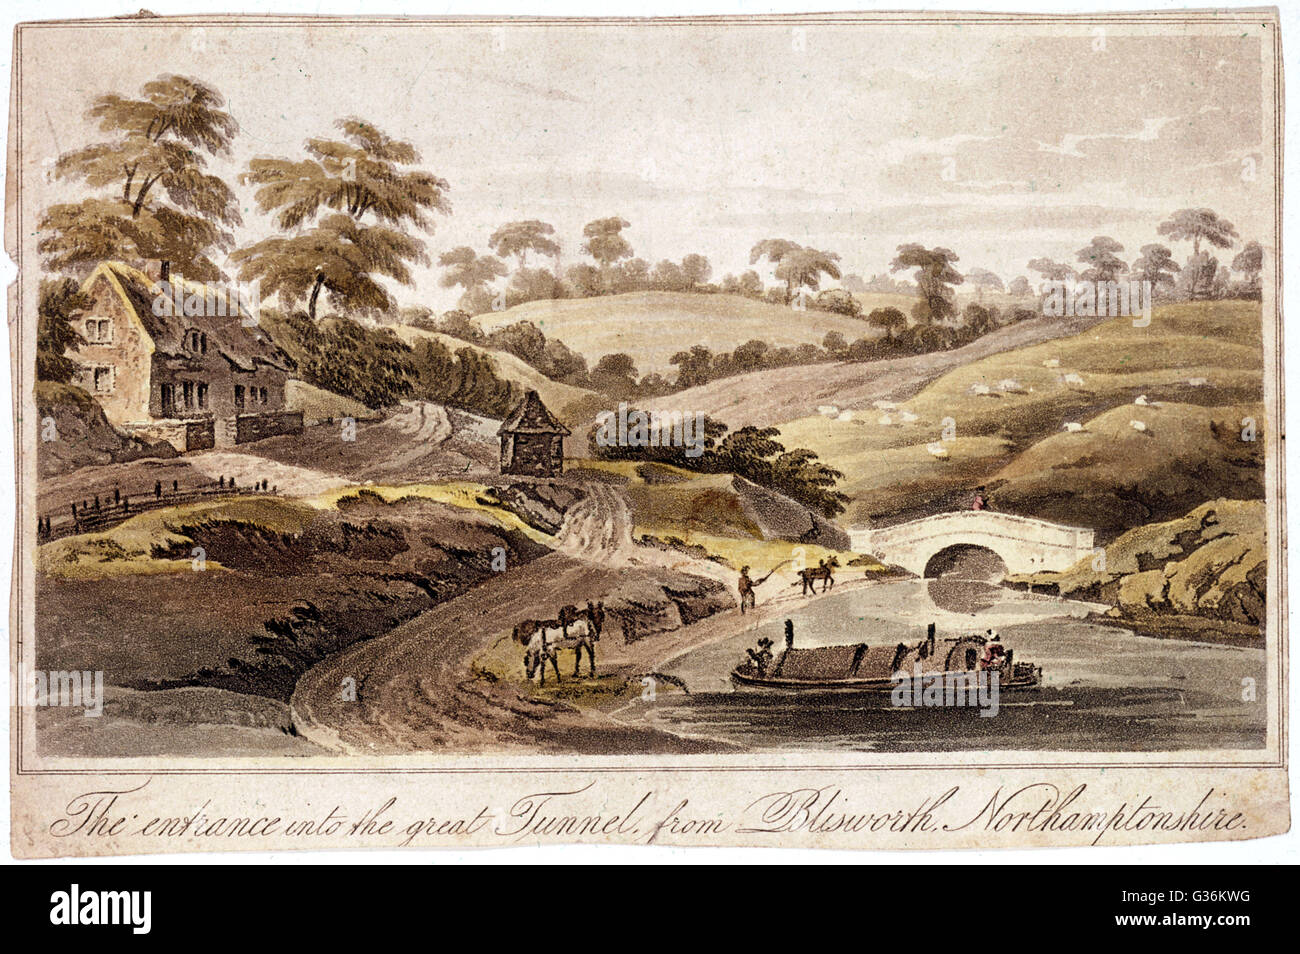 Entrance to the 1100-yard canal tunnel at Blisworth,  Northamptonshire, England     Date: late 18th century - Stock Image